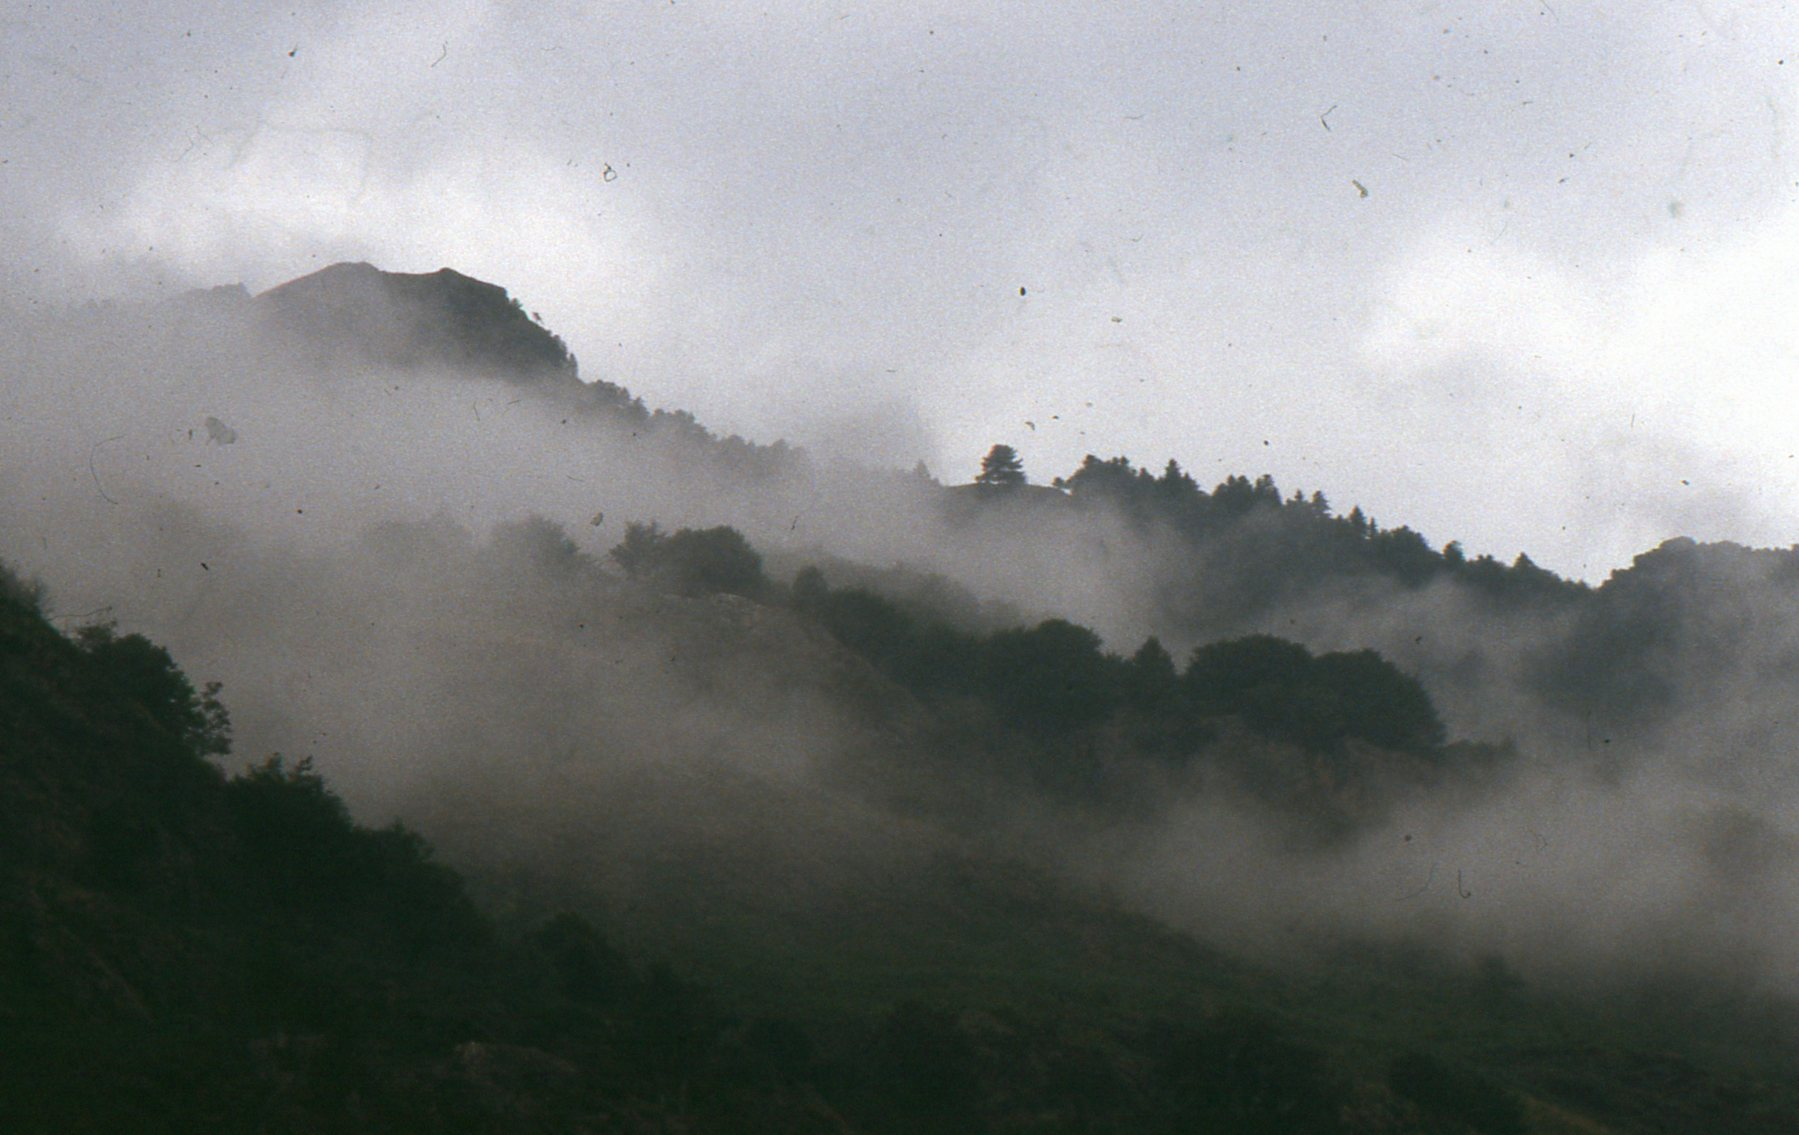 Fog tendrils swirl around a misty mountaintop in Spain's Aran Valley.